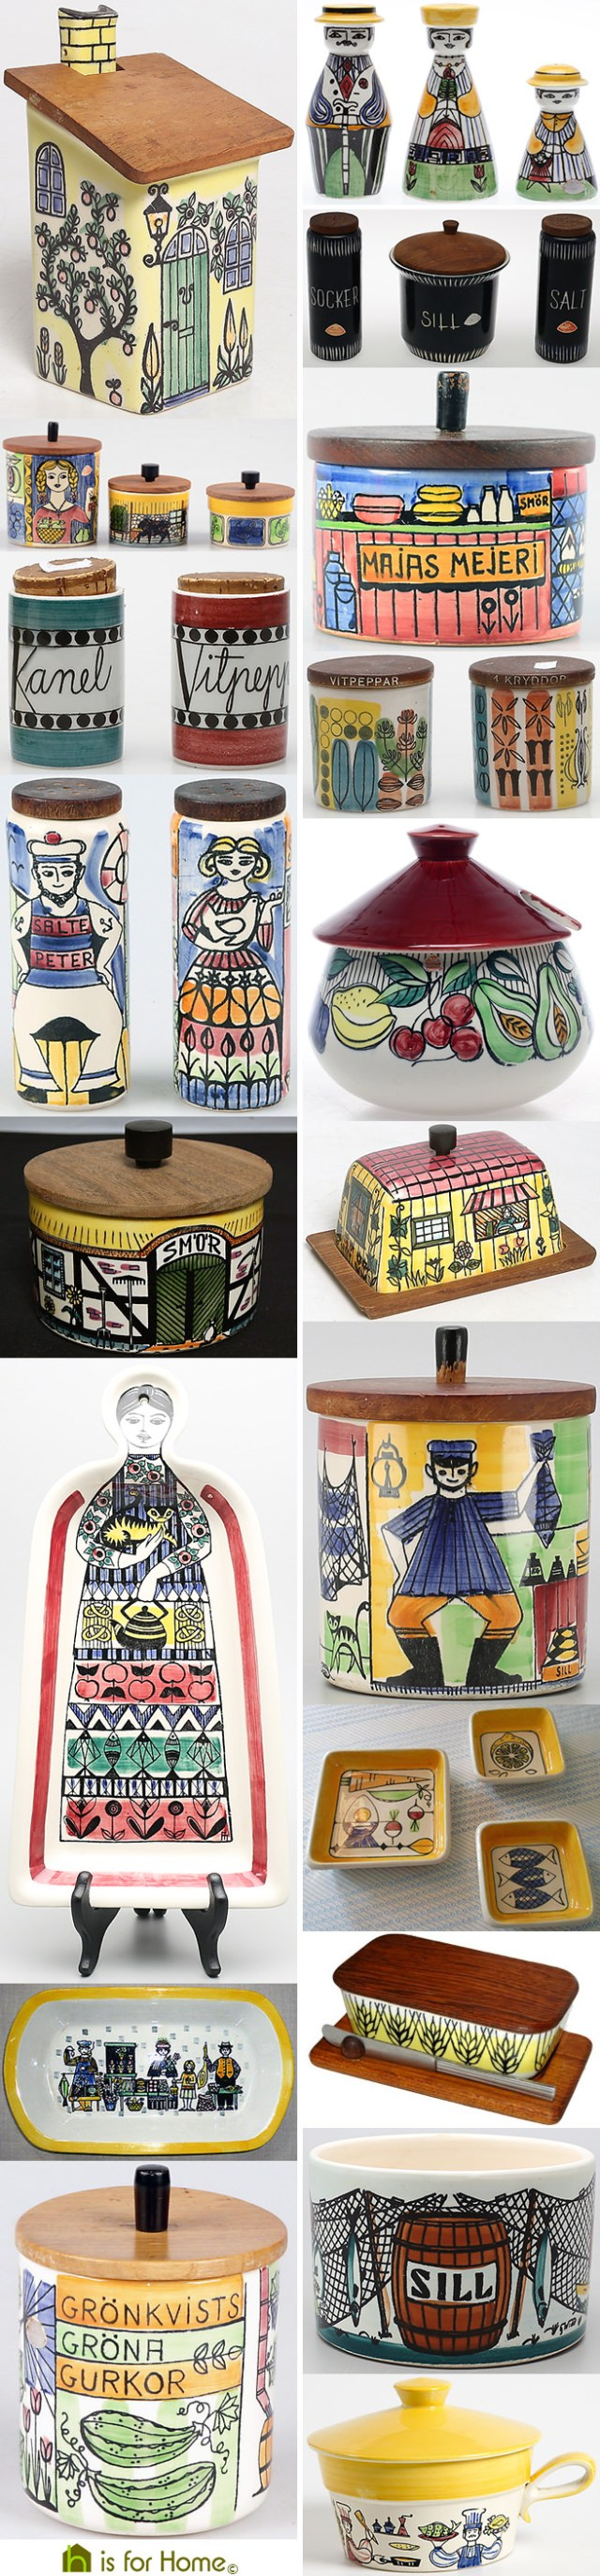 Mosaic of Anita Nylund designs | H is for Home